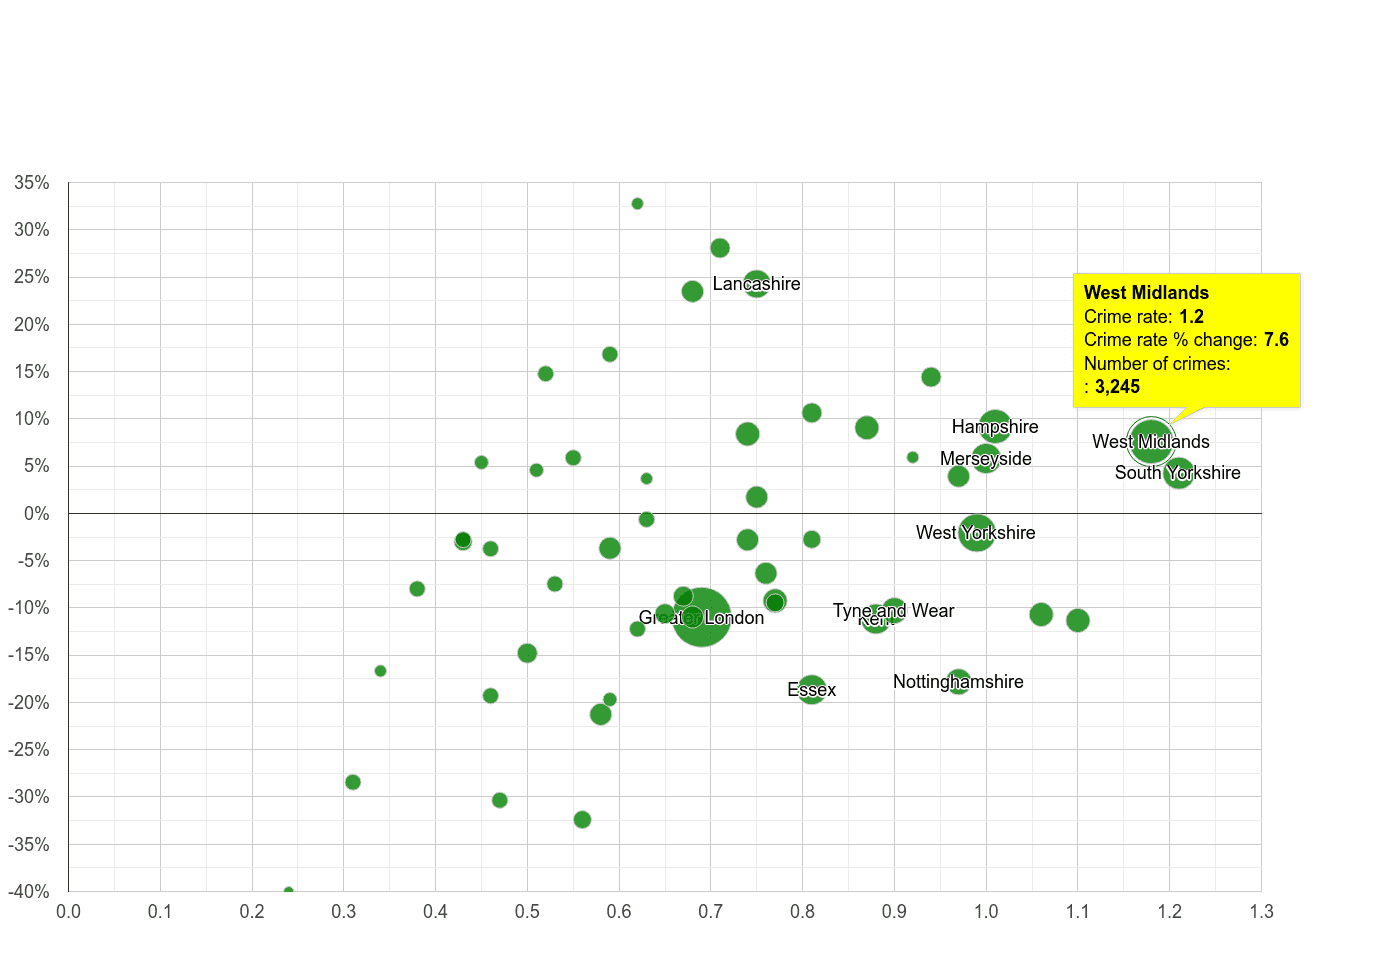 West Midlands county possession of weapons crime rate compared to other counties